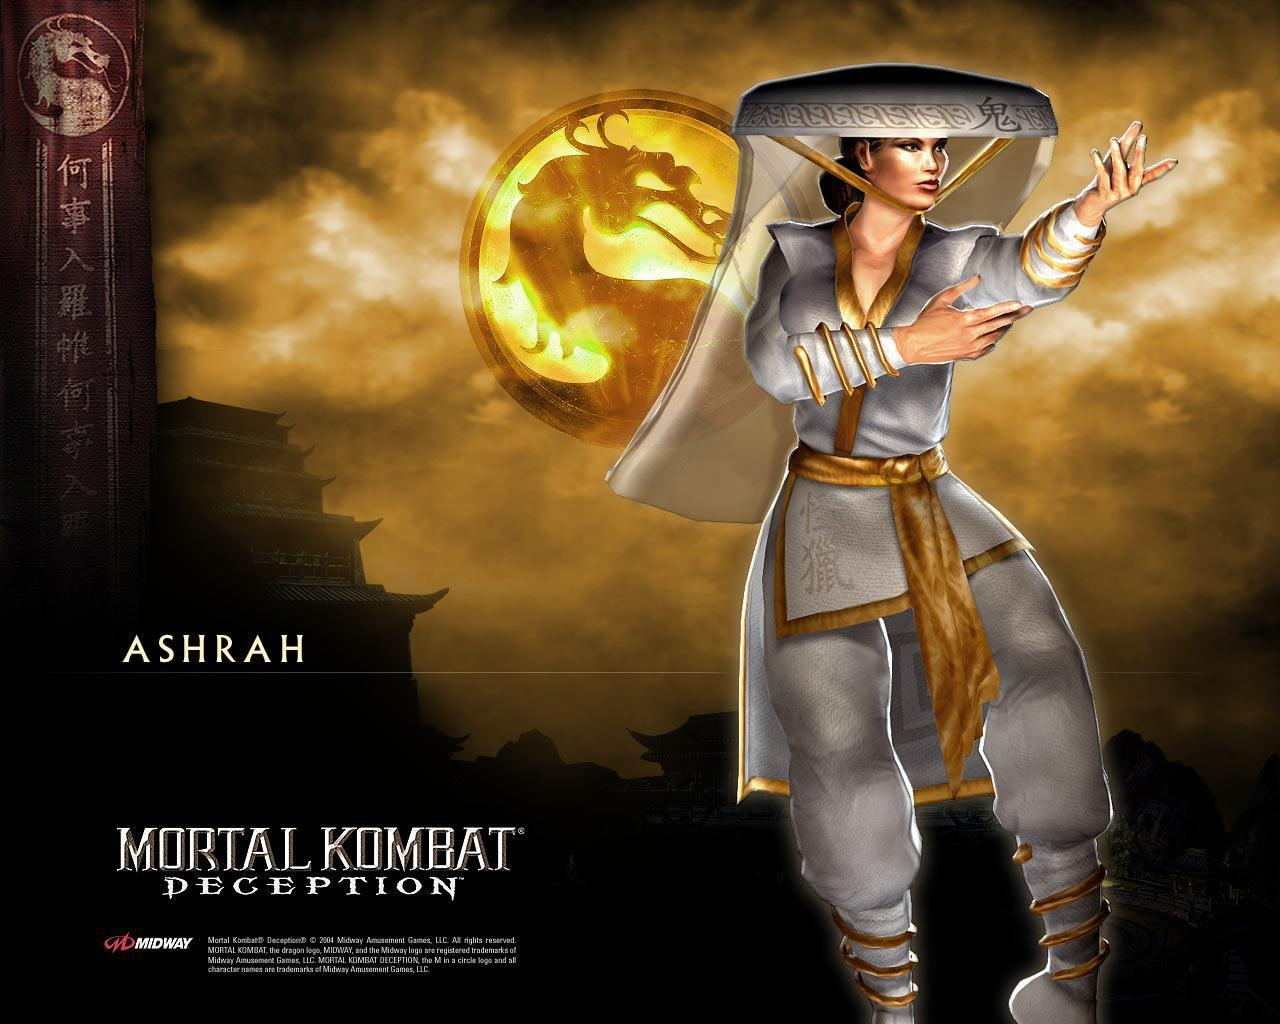 Mortal Kombat images MK wallpapers wallpaper photos 27864310 1280x1024